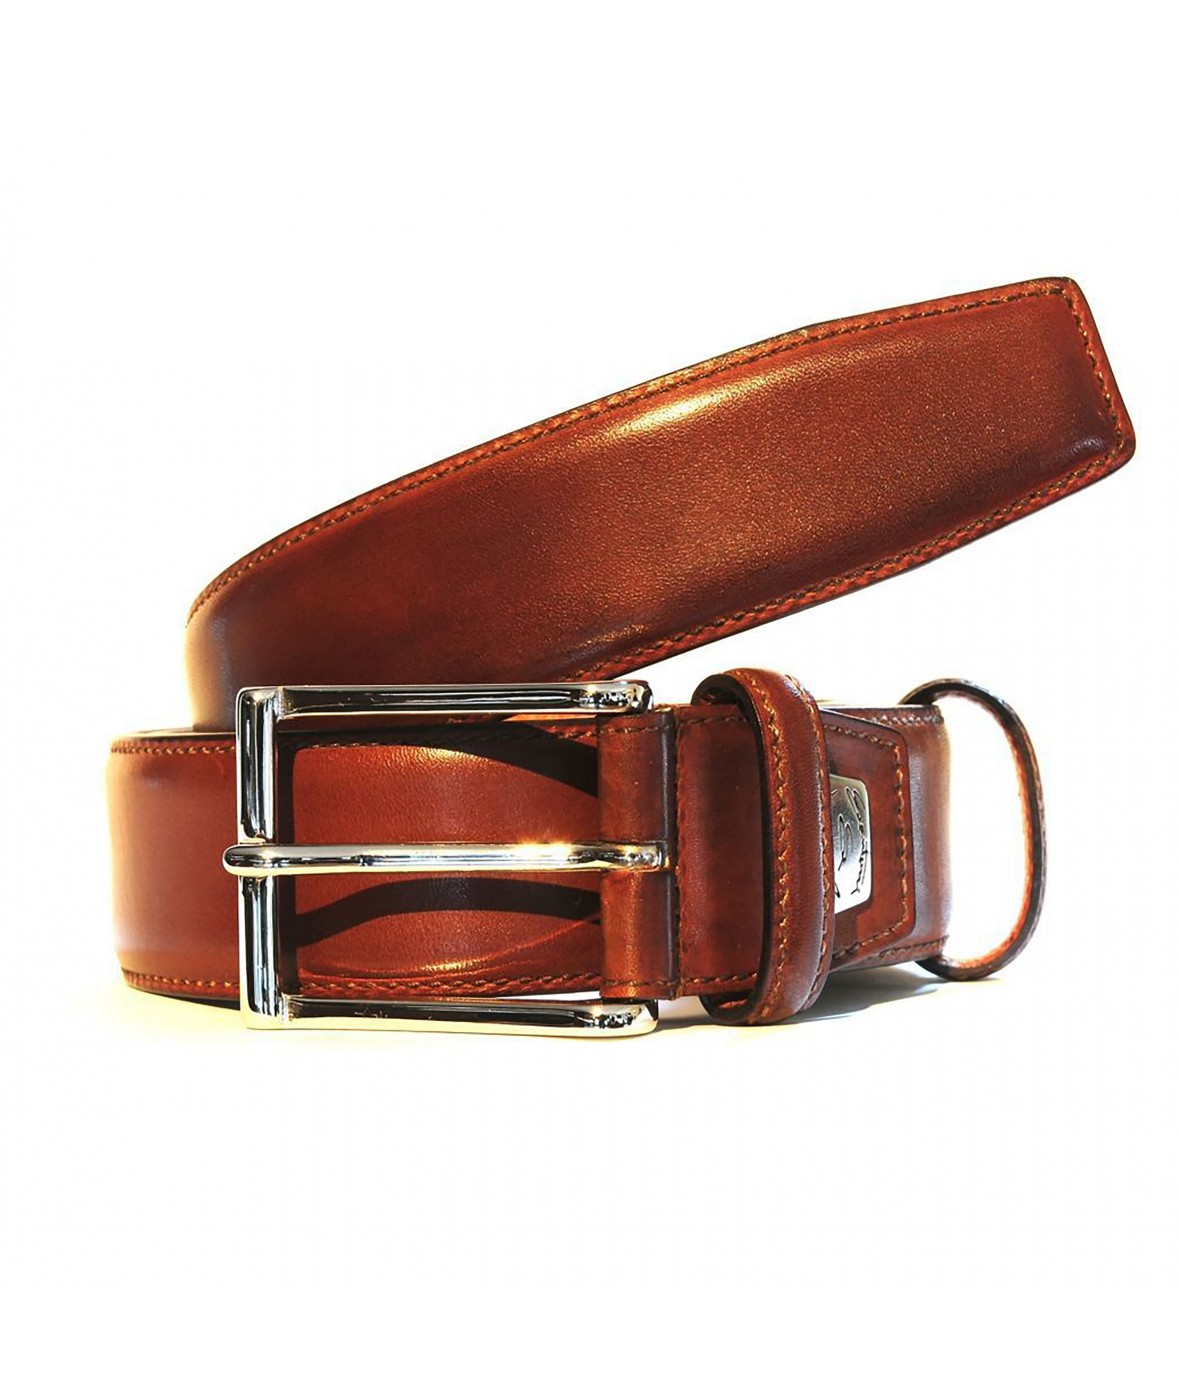 Santoni Belt Leather (369)